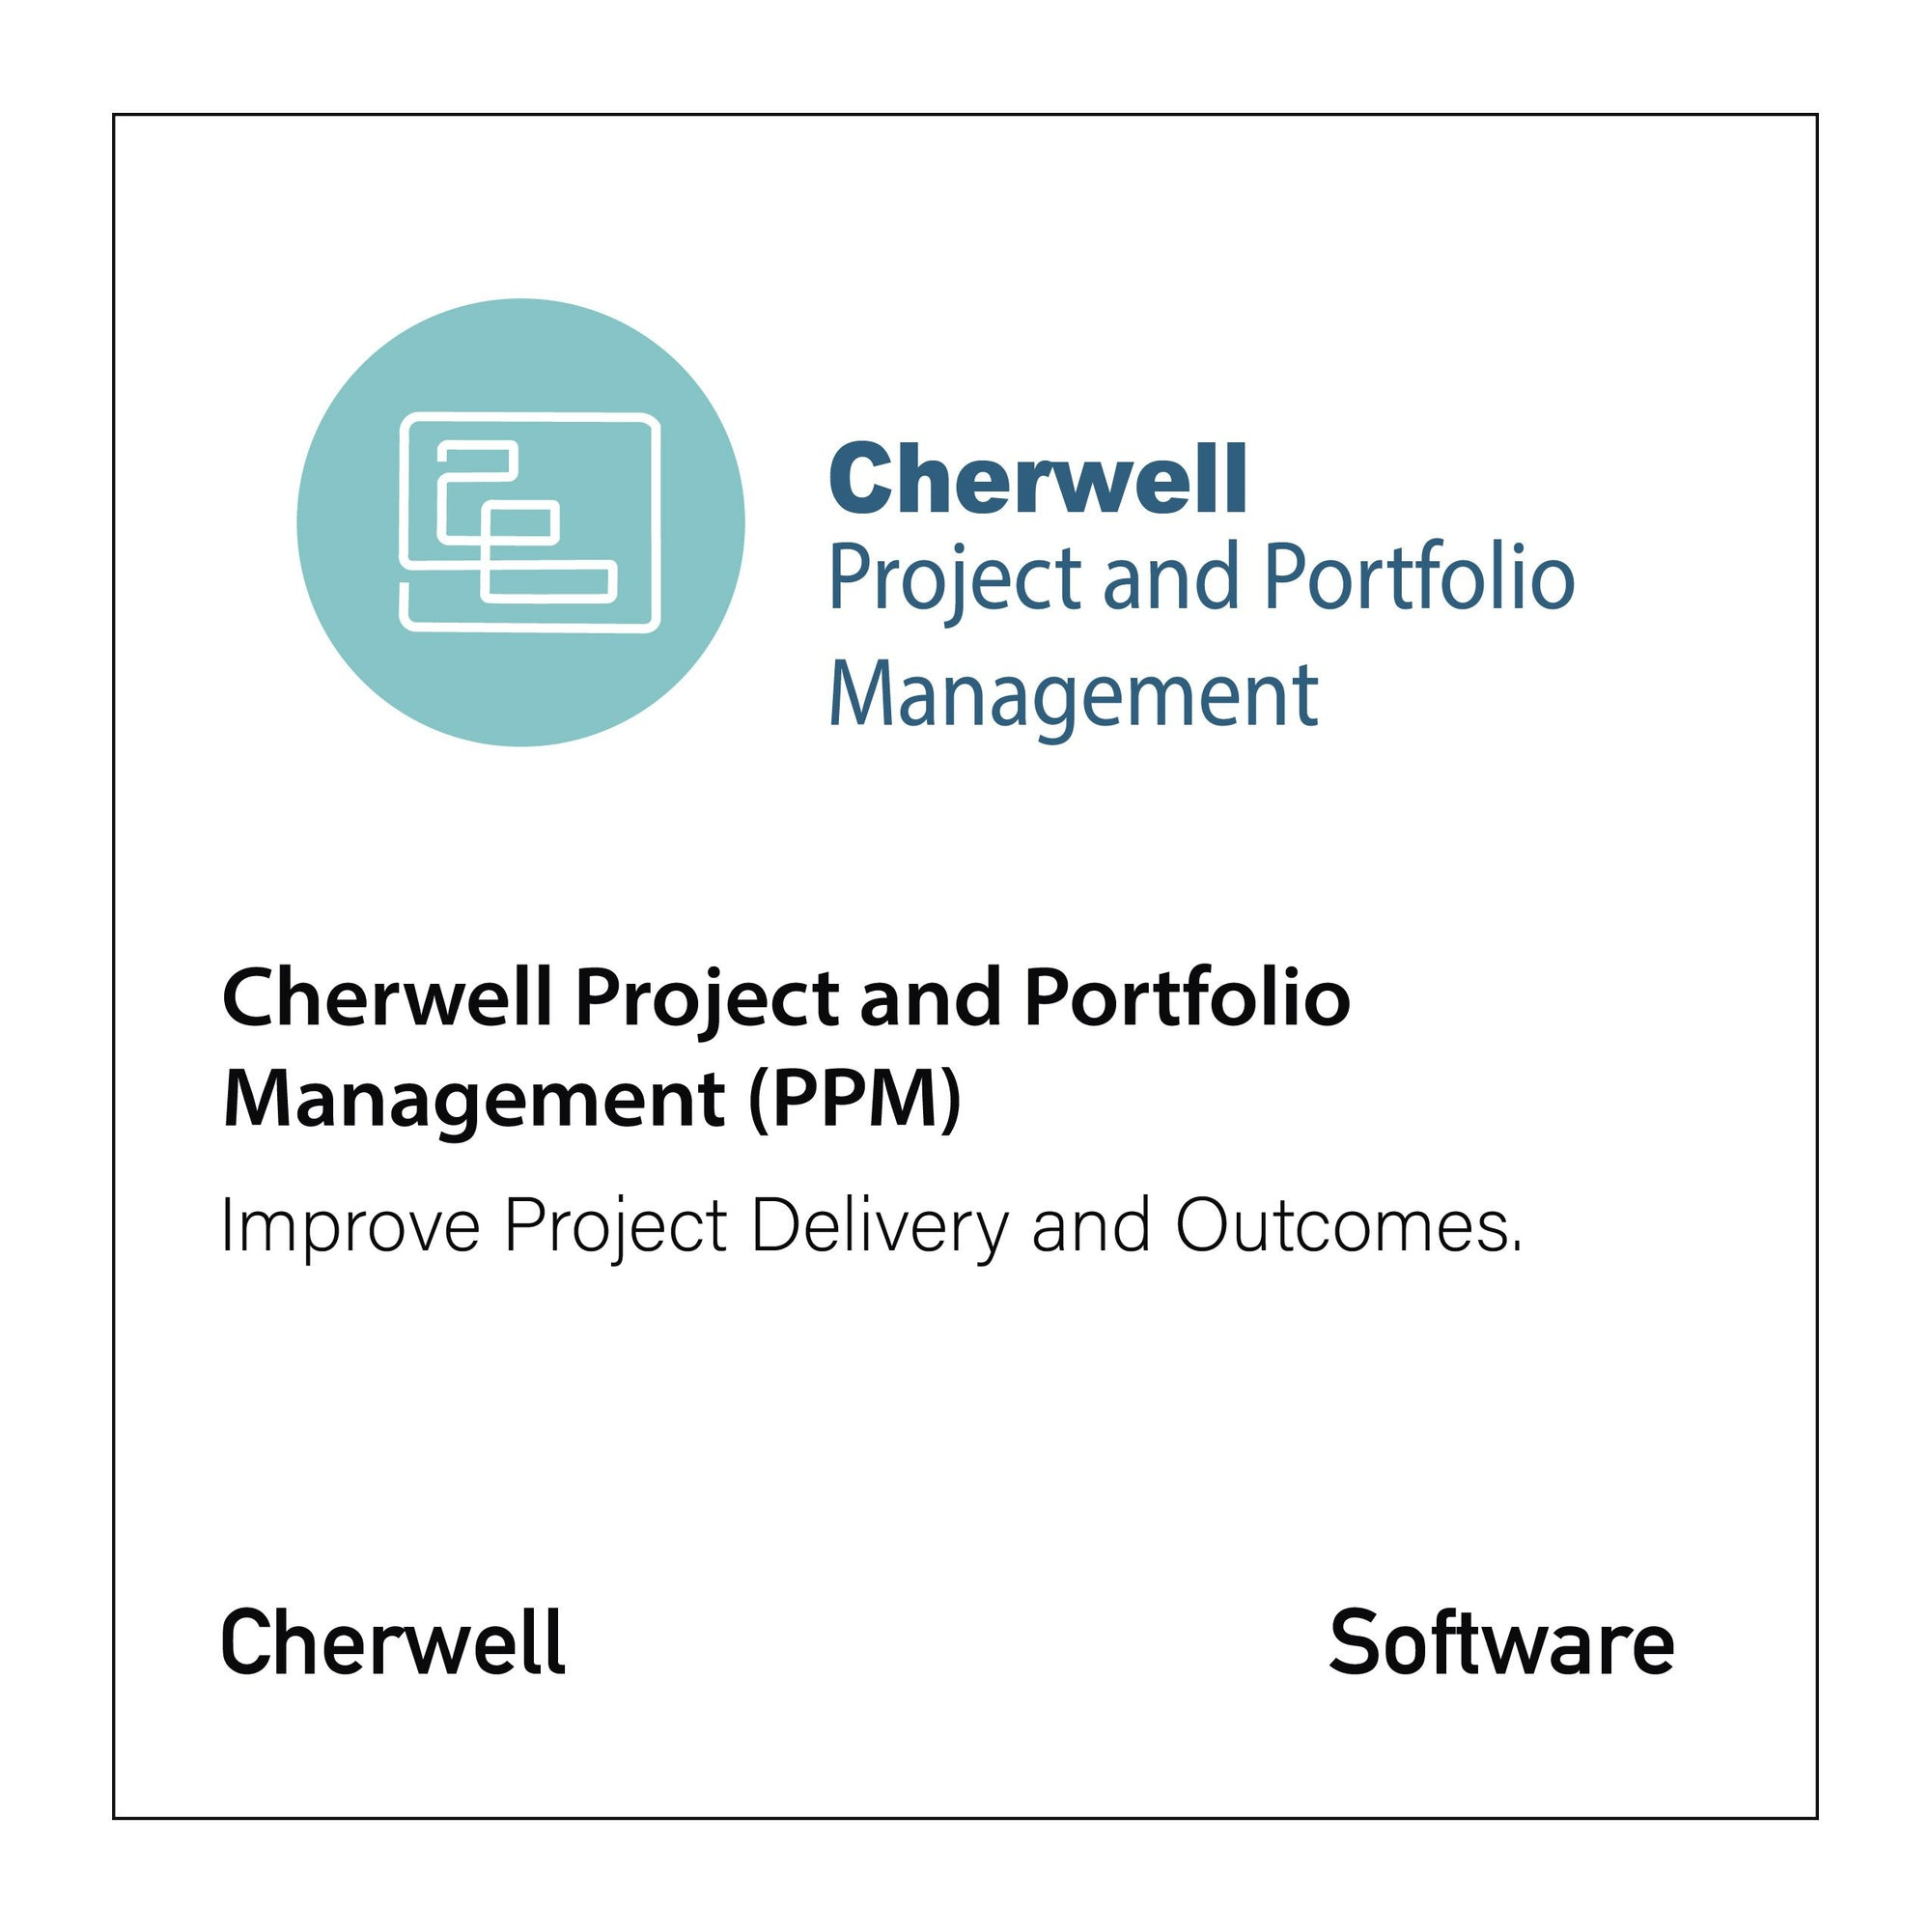 Cherwell Project & Portfolio Management (PPM) - CloseReach Ltd